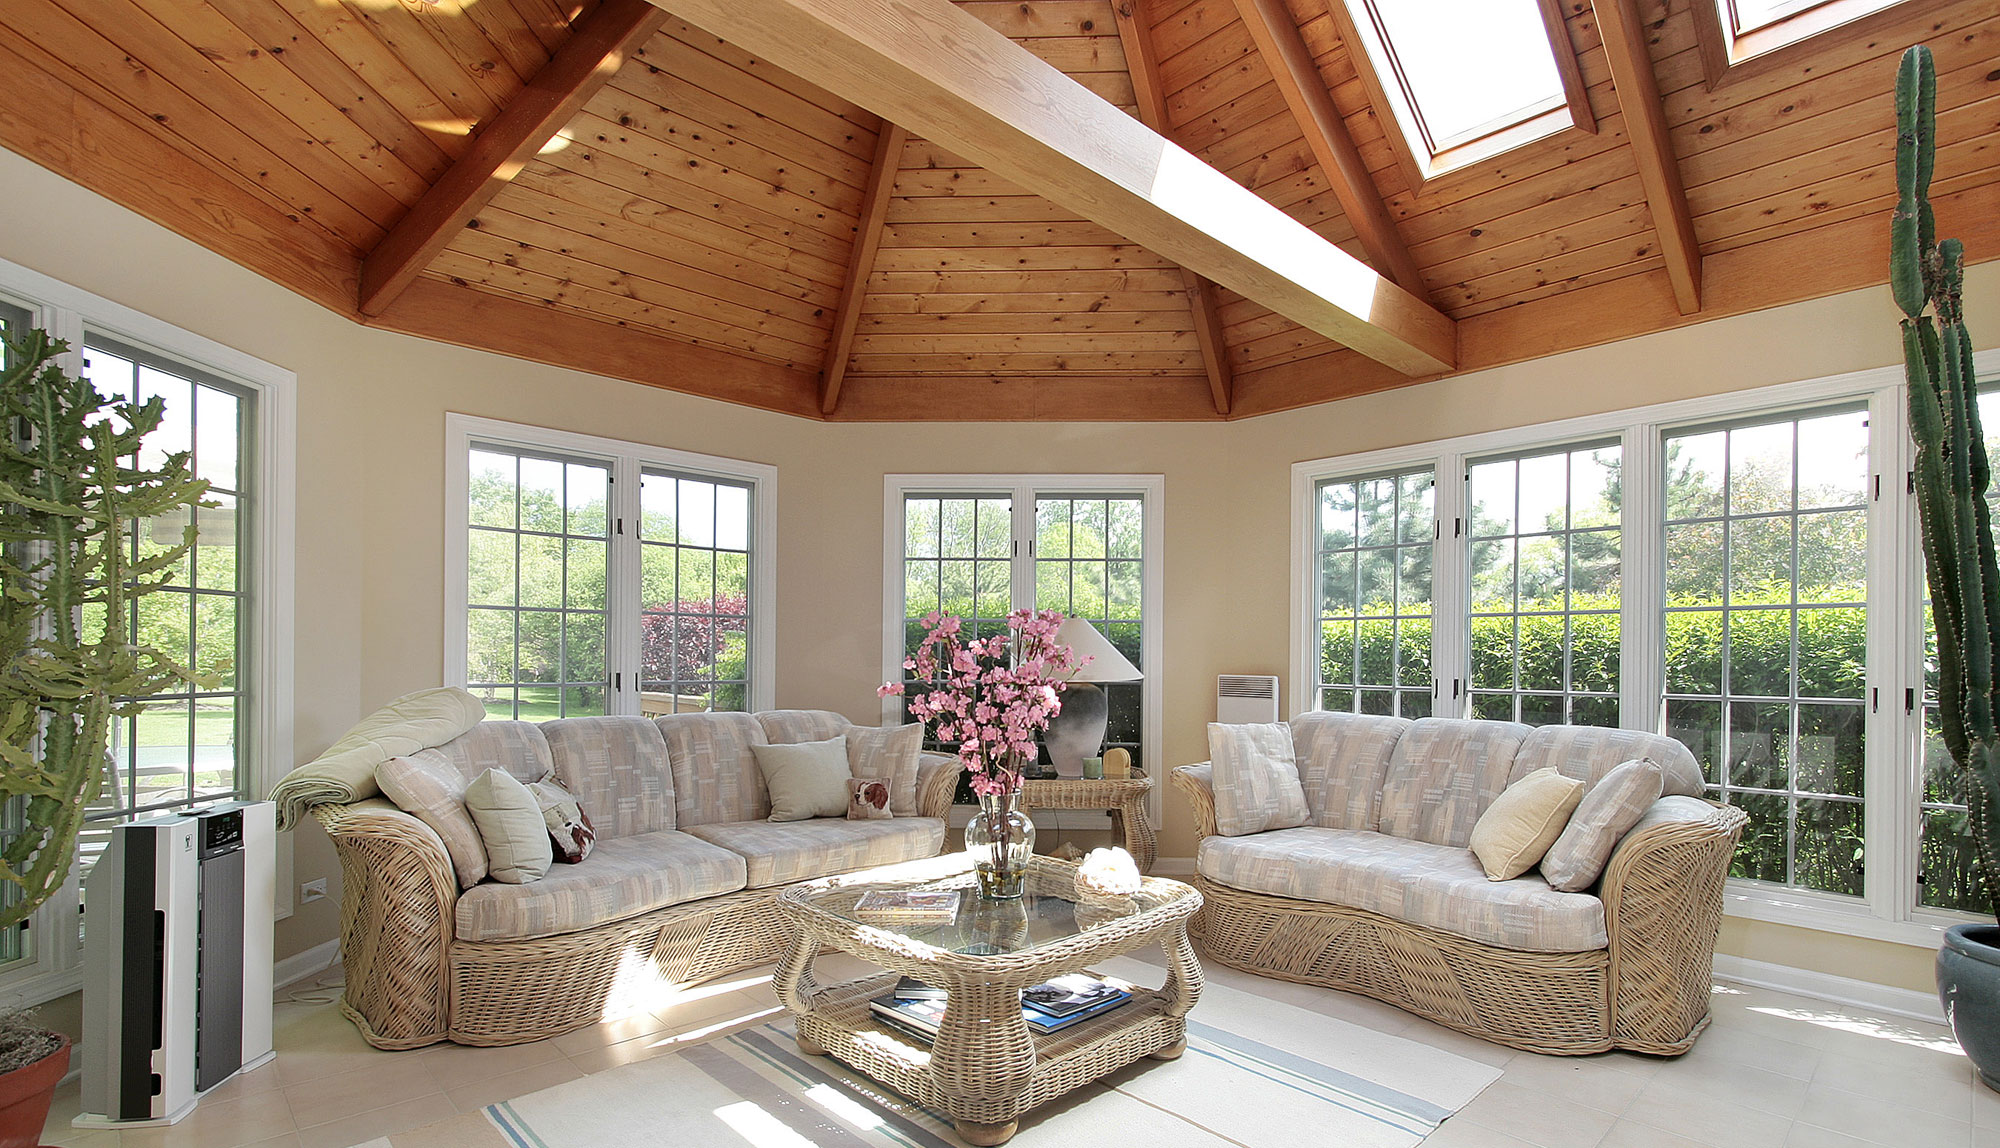 Sunrooms & Patio Enclosures